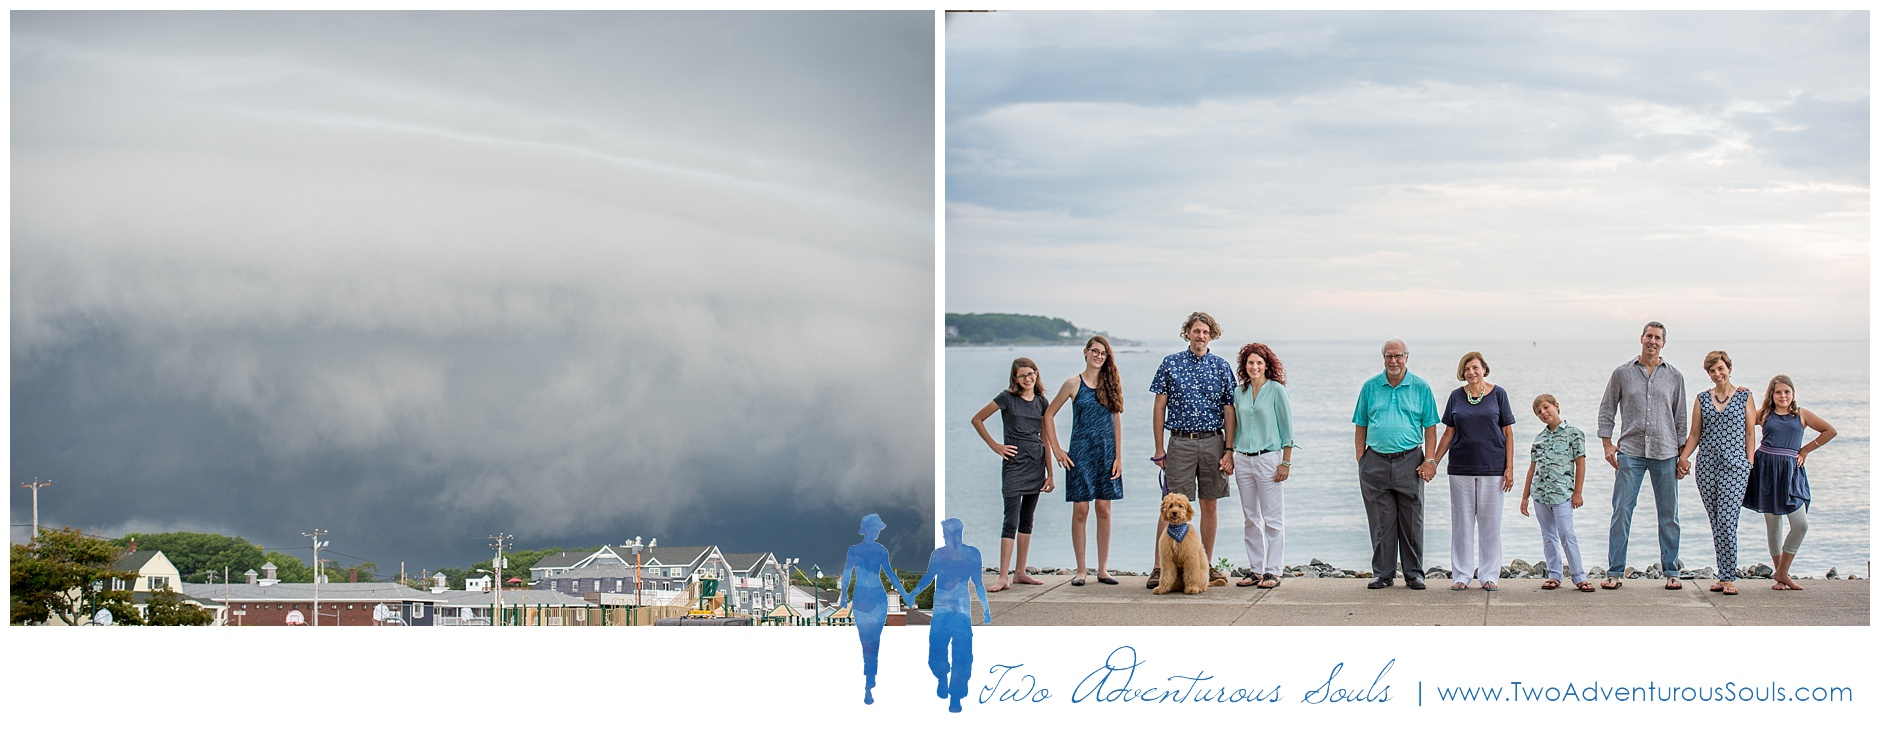 Maine Family Photographers, Best Portraits of 2018, Two Adventurous Souls_0013.jpg